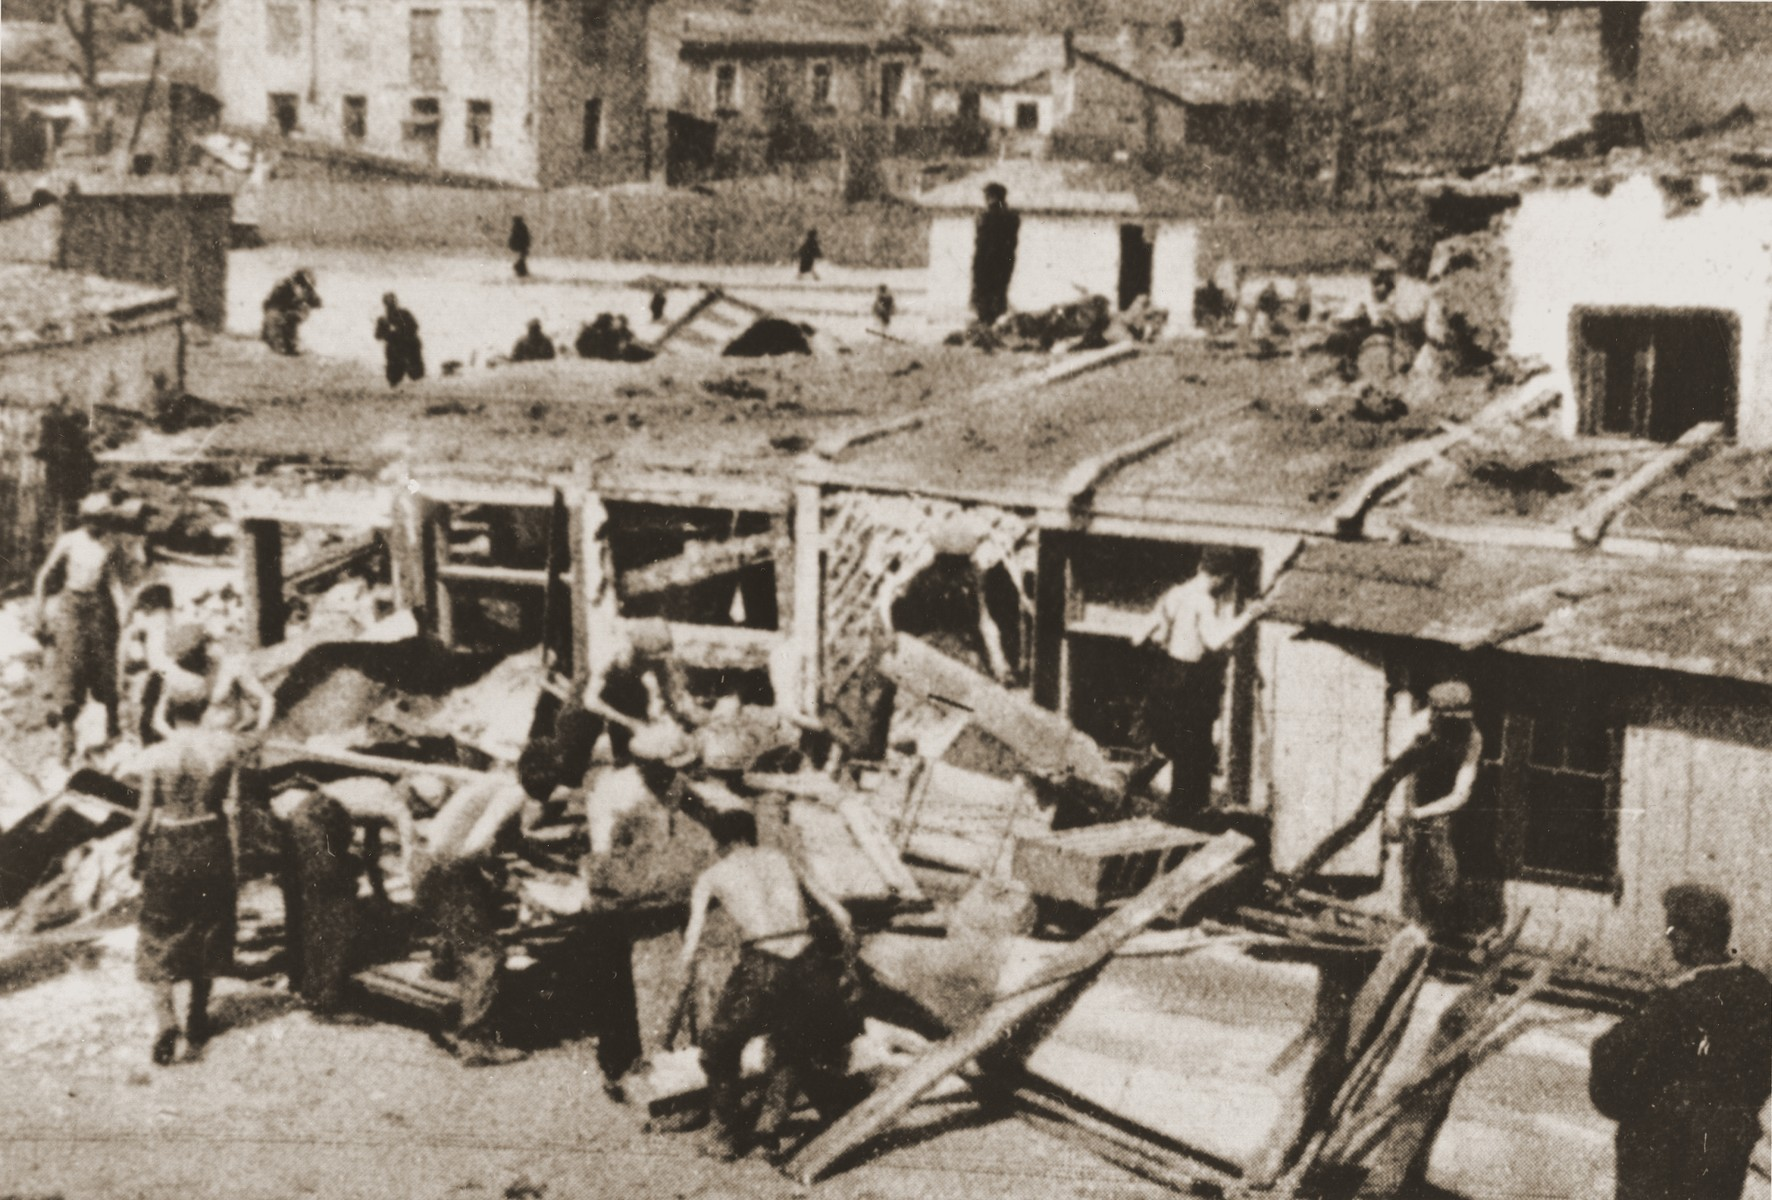 Polish laborers cart away furniture and dismantle buildings after the liquidation of the Lublin ghetto.